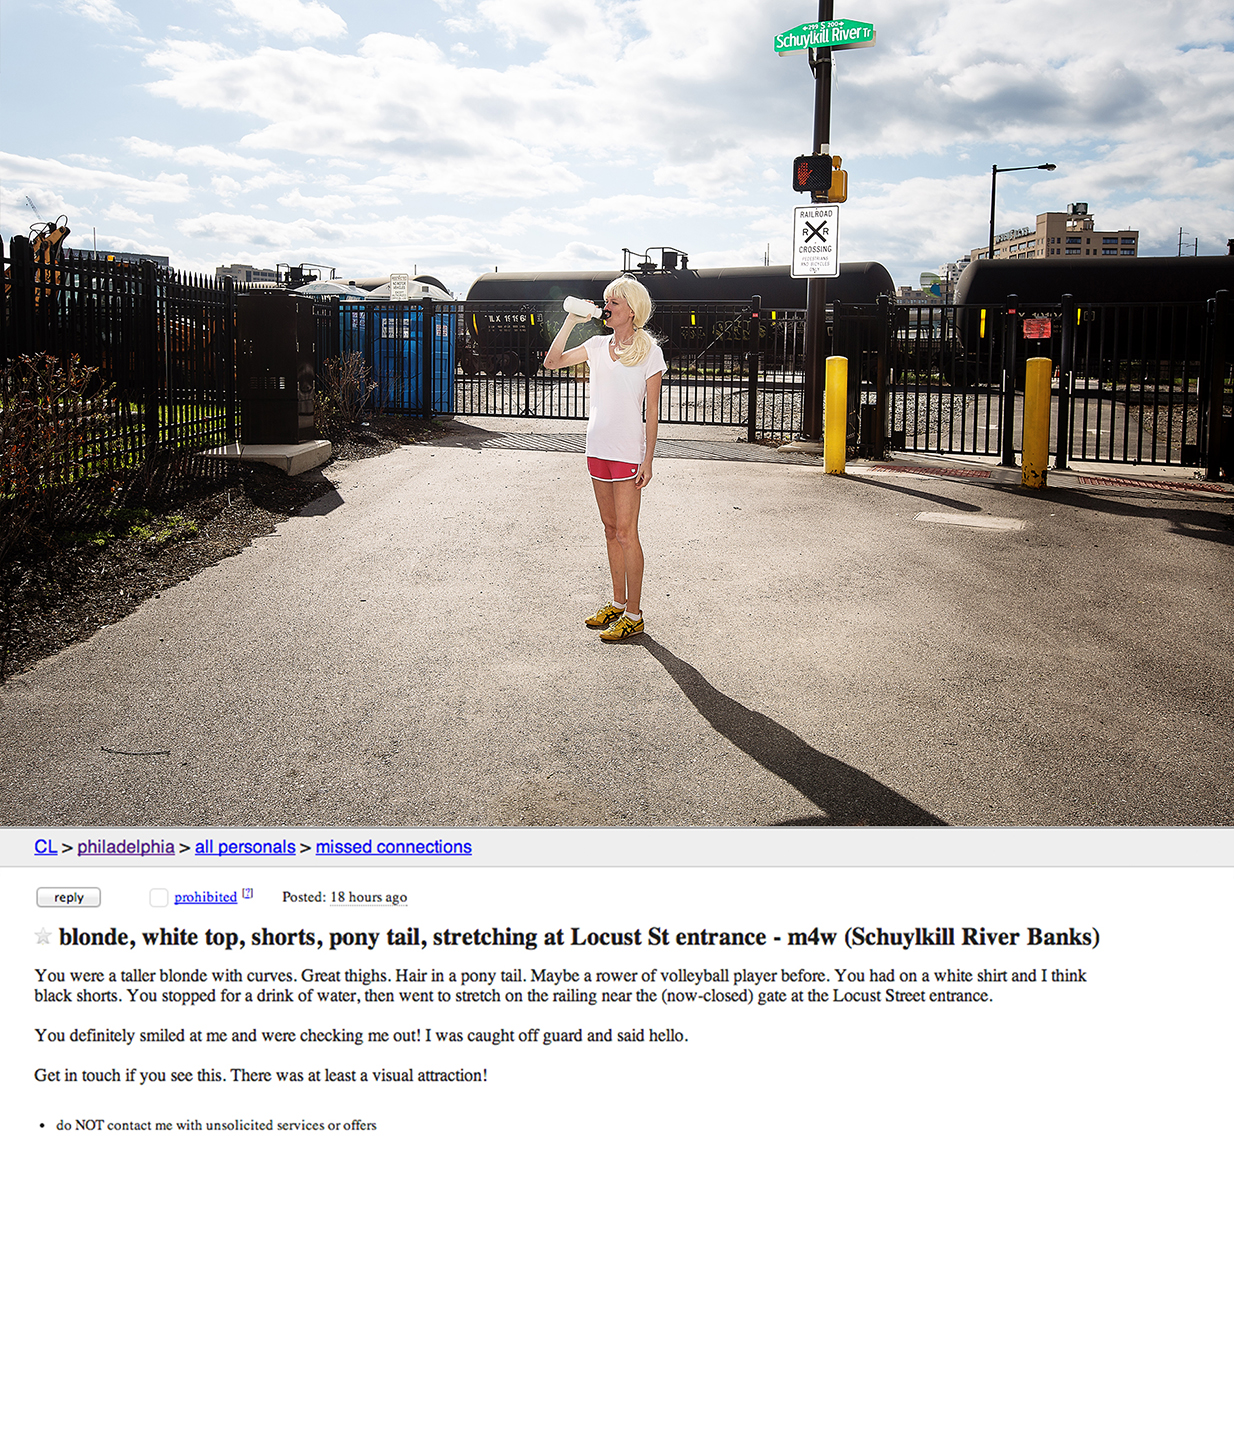 blonde, white top, shorts, pony tail, stretching at Locust St entrance